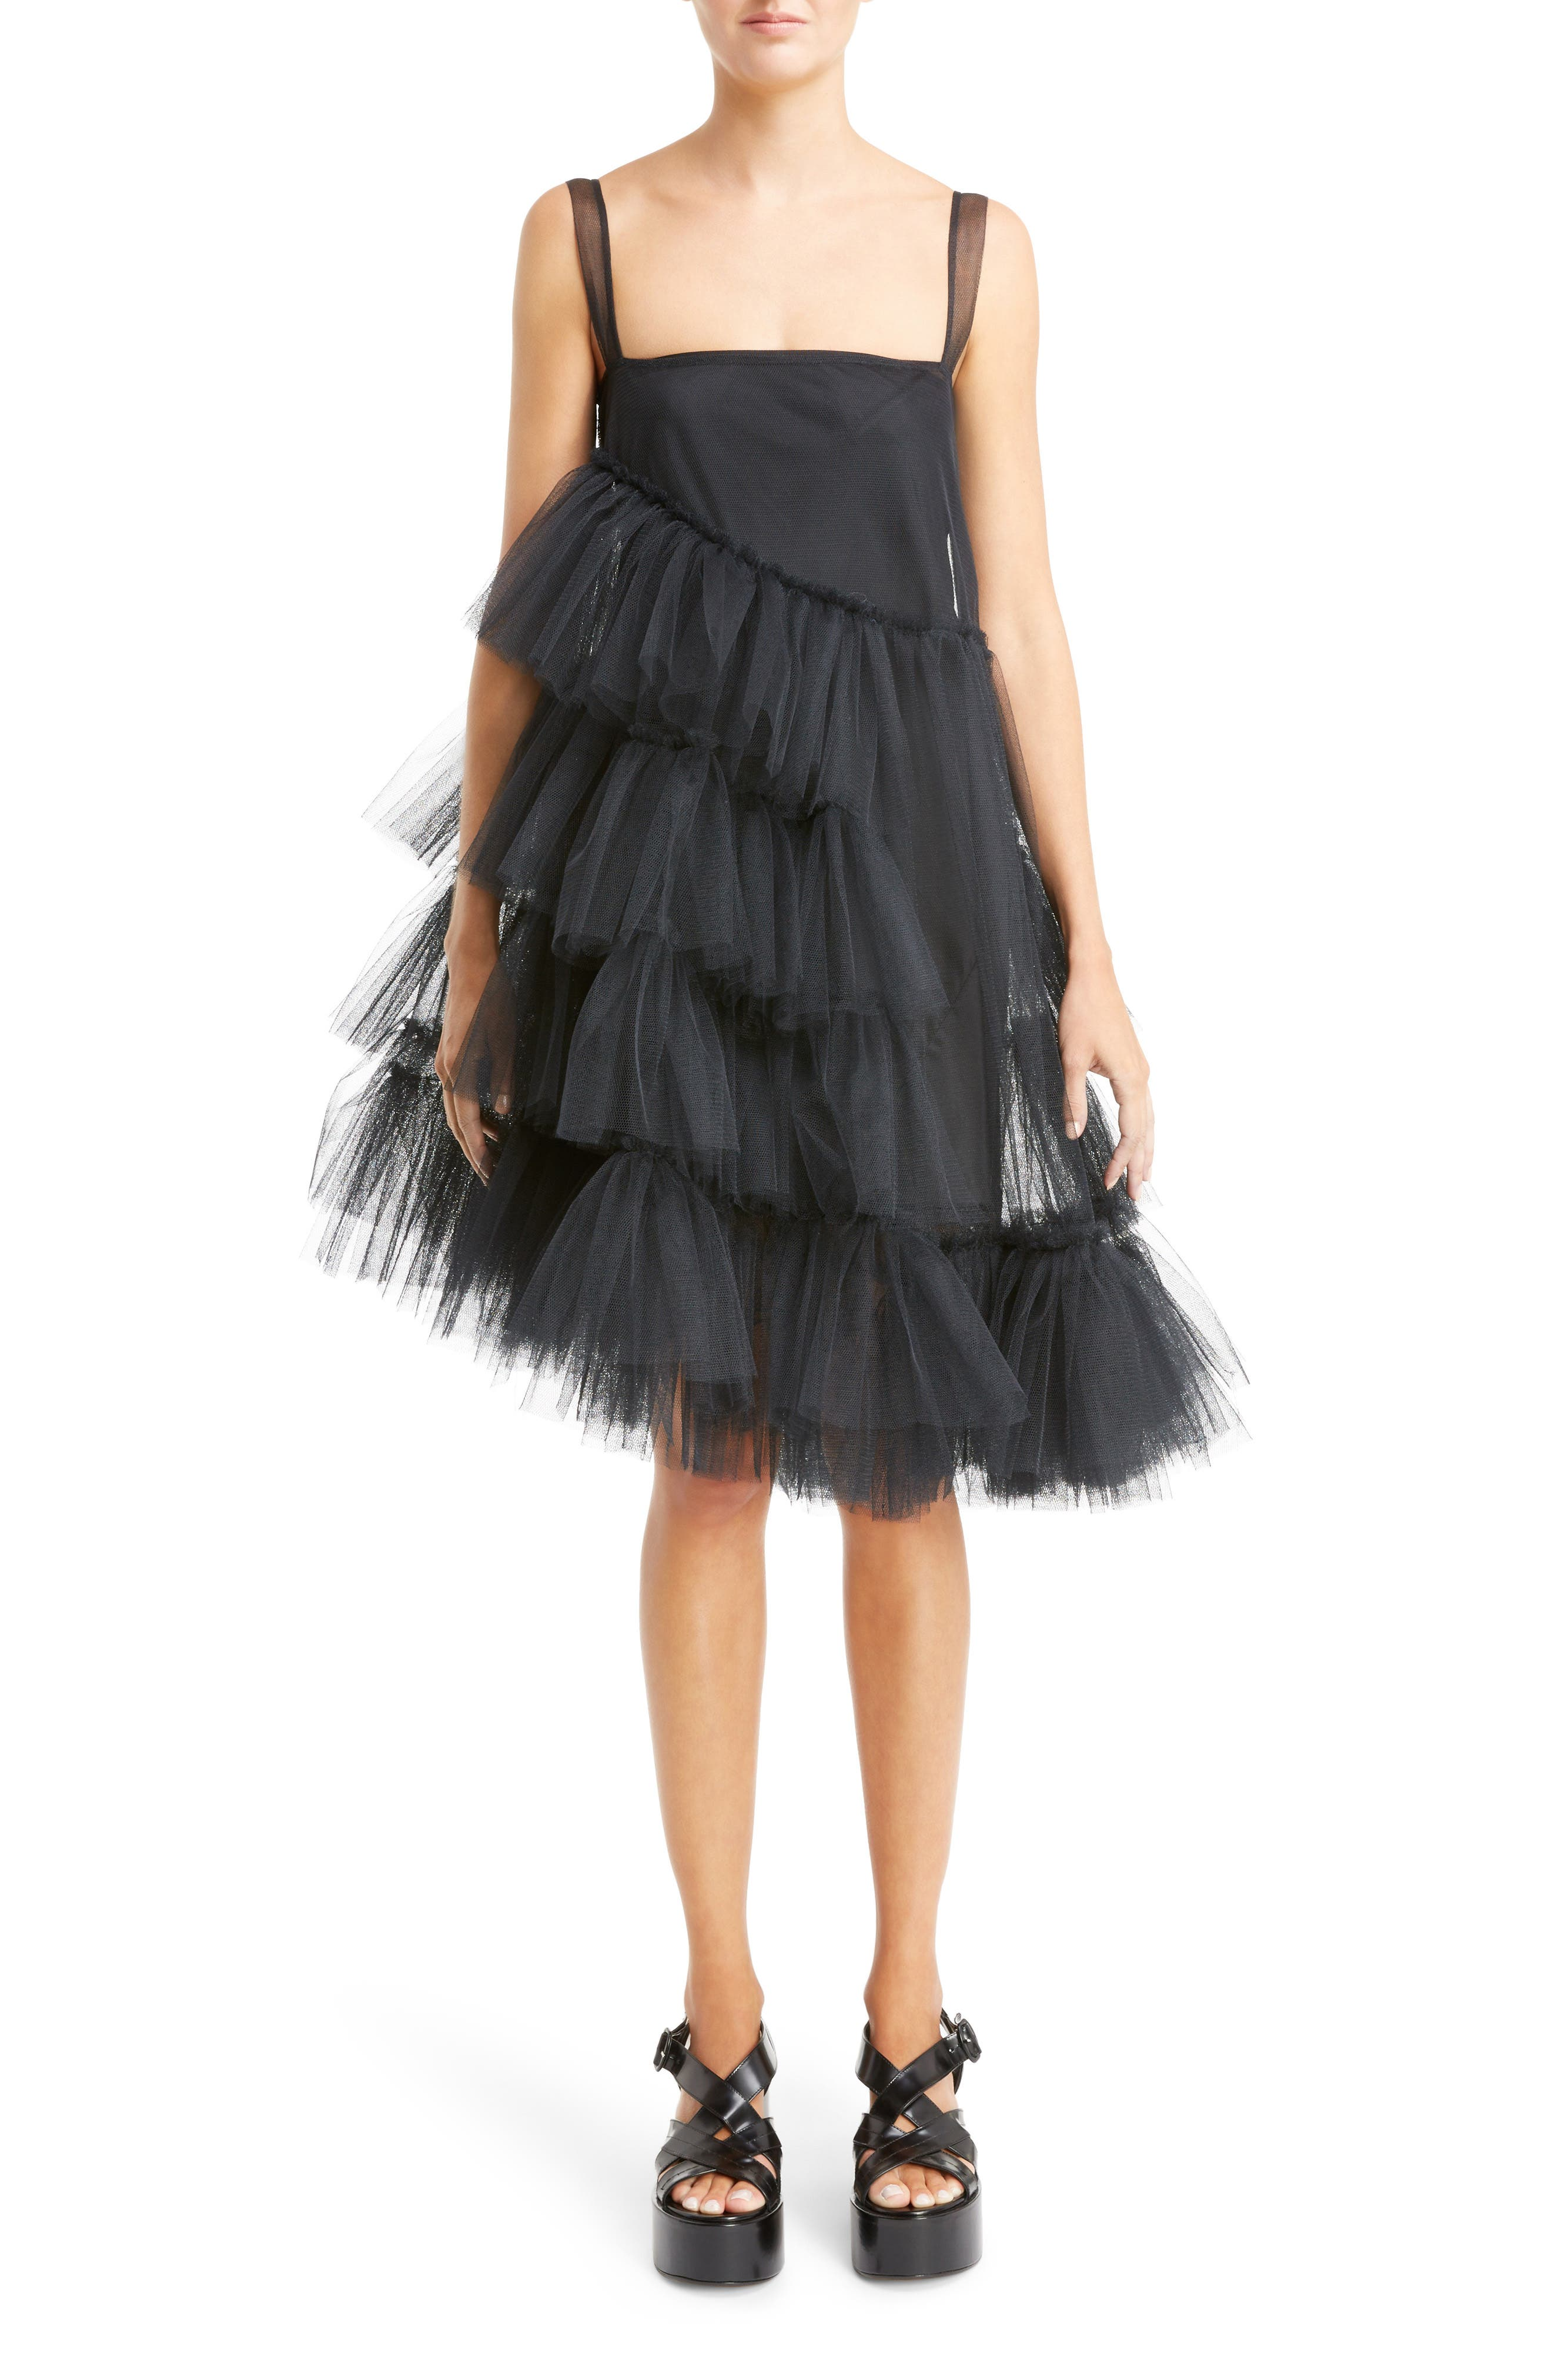 Turbo Tiered Tulle Dress,                         Main,                         color, 001